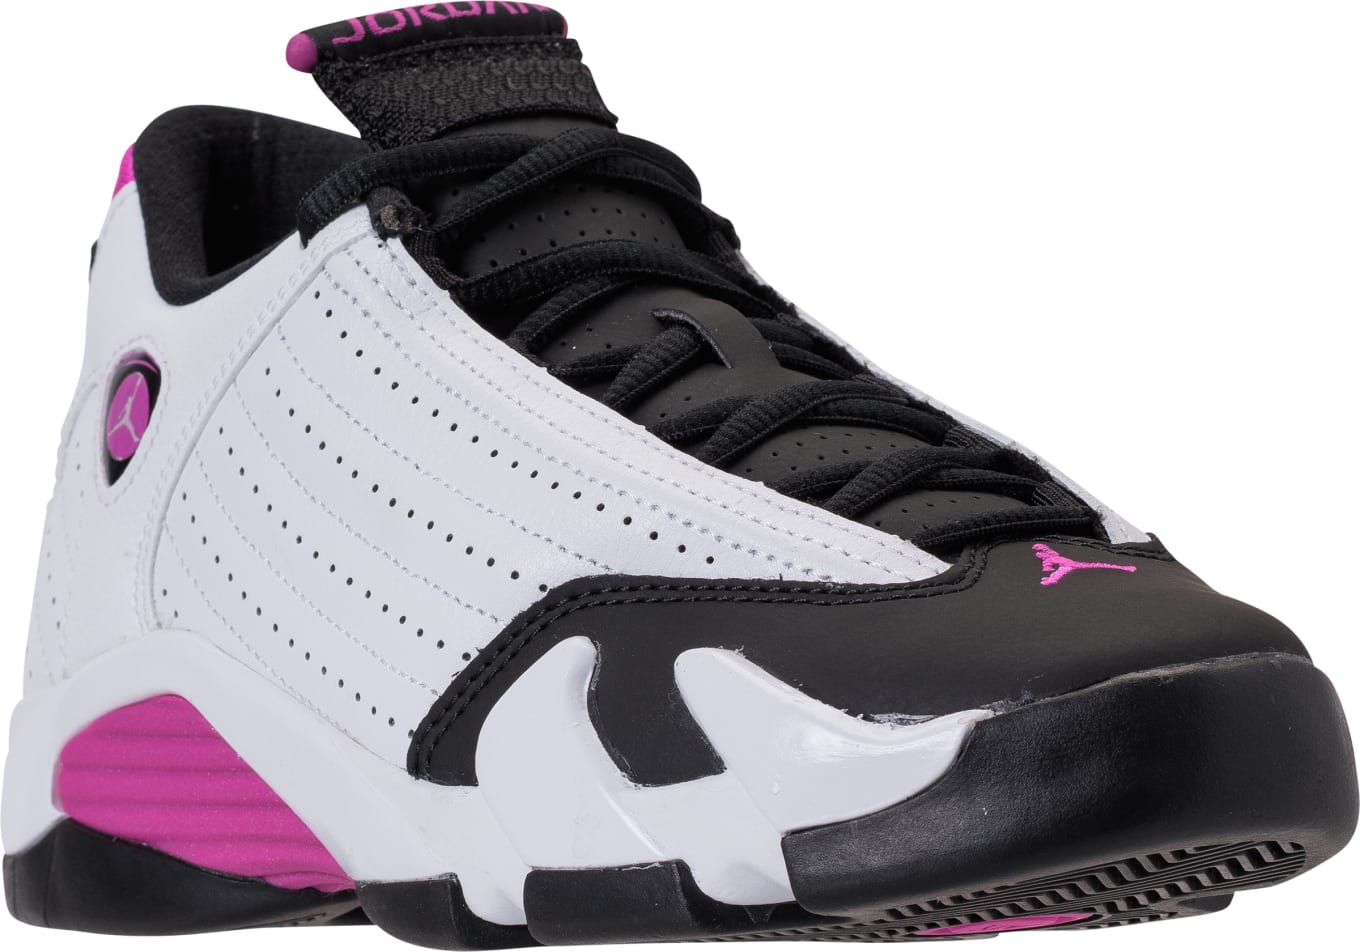 1755c605aa4a The  Black Toe  Air Jordan 14 Remixed for Girls.  Fuchsia Blast  set for  May launch.